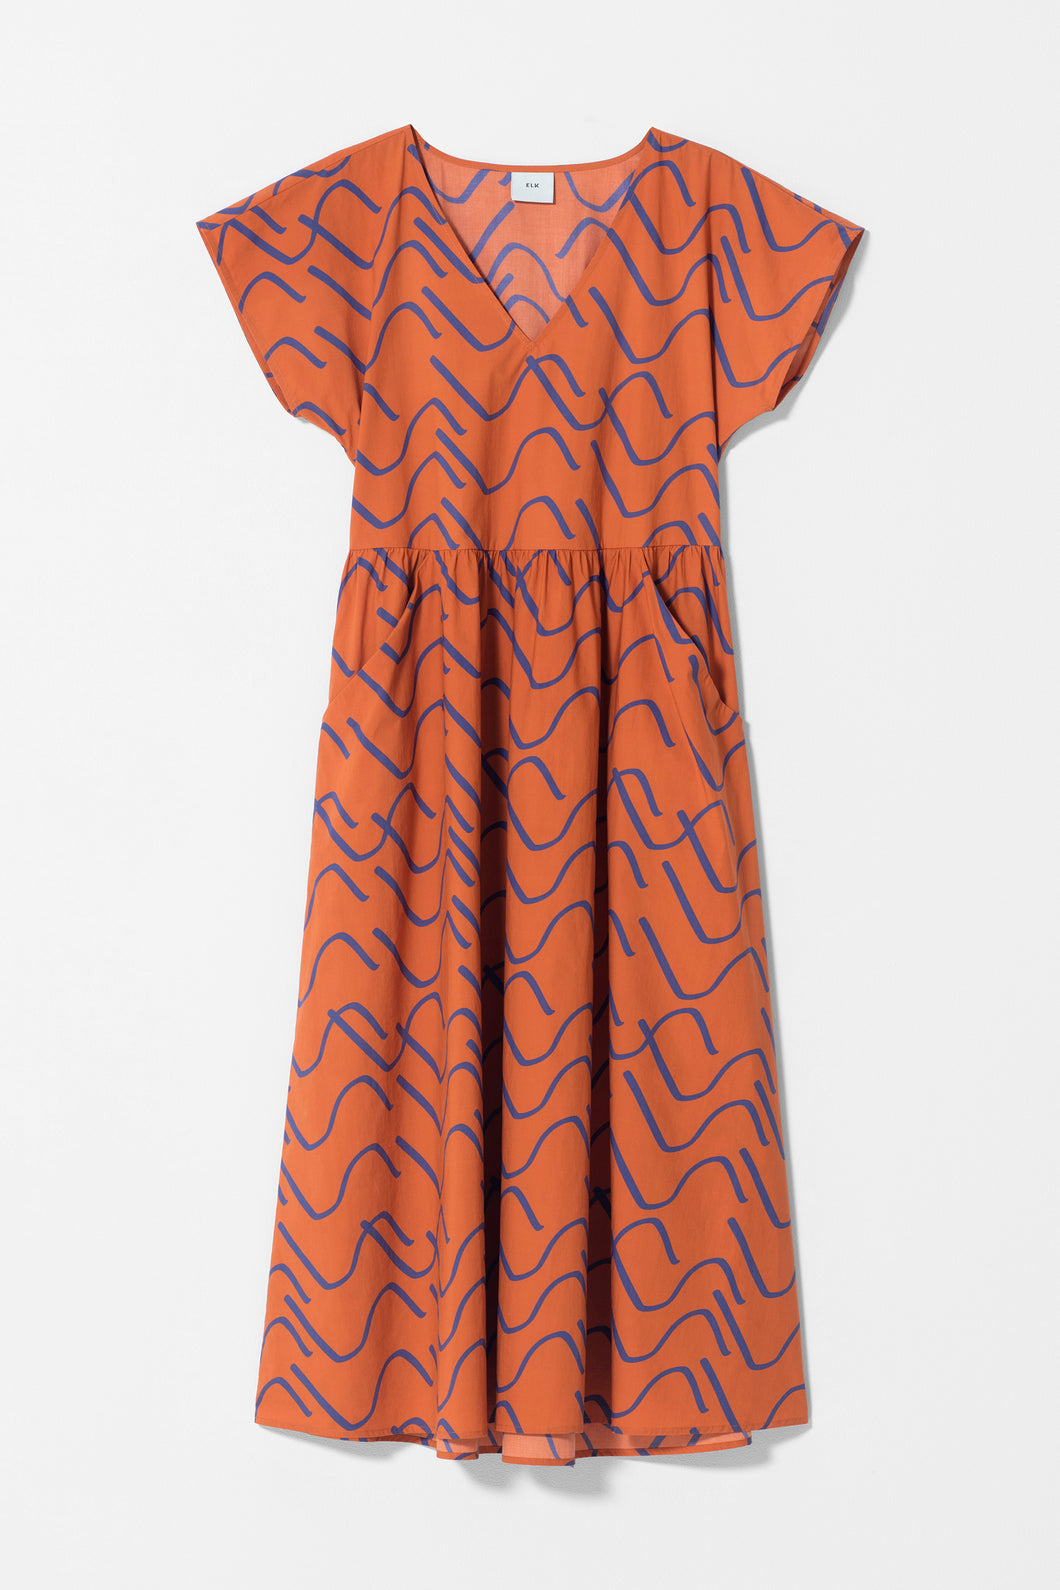 ELK THE LABEL Ollie Dress | Copper/ Cobalt One Country Mouse Yamba